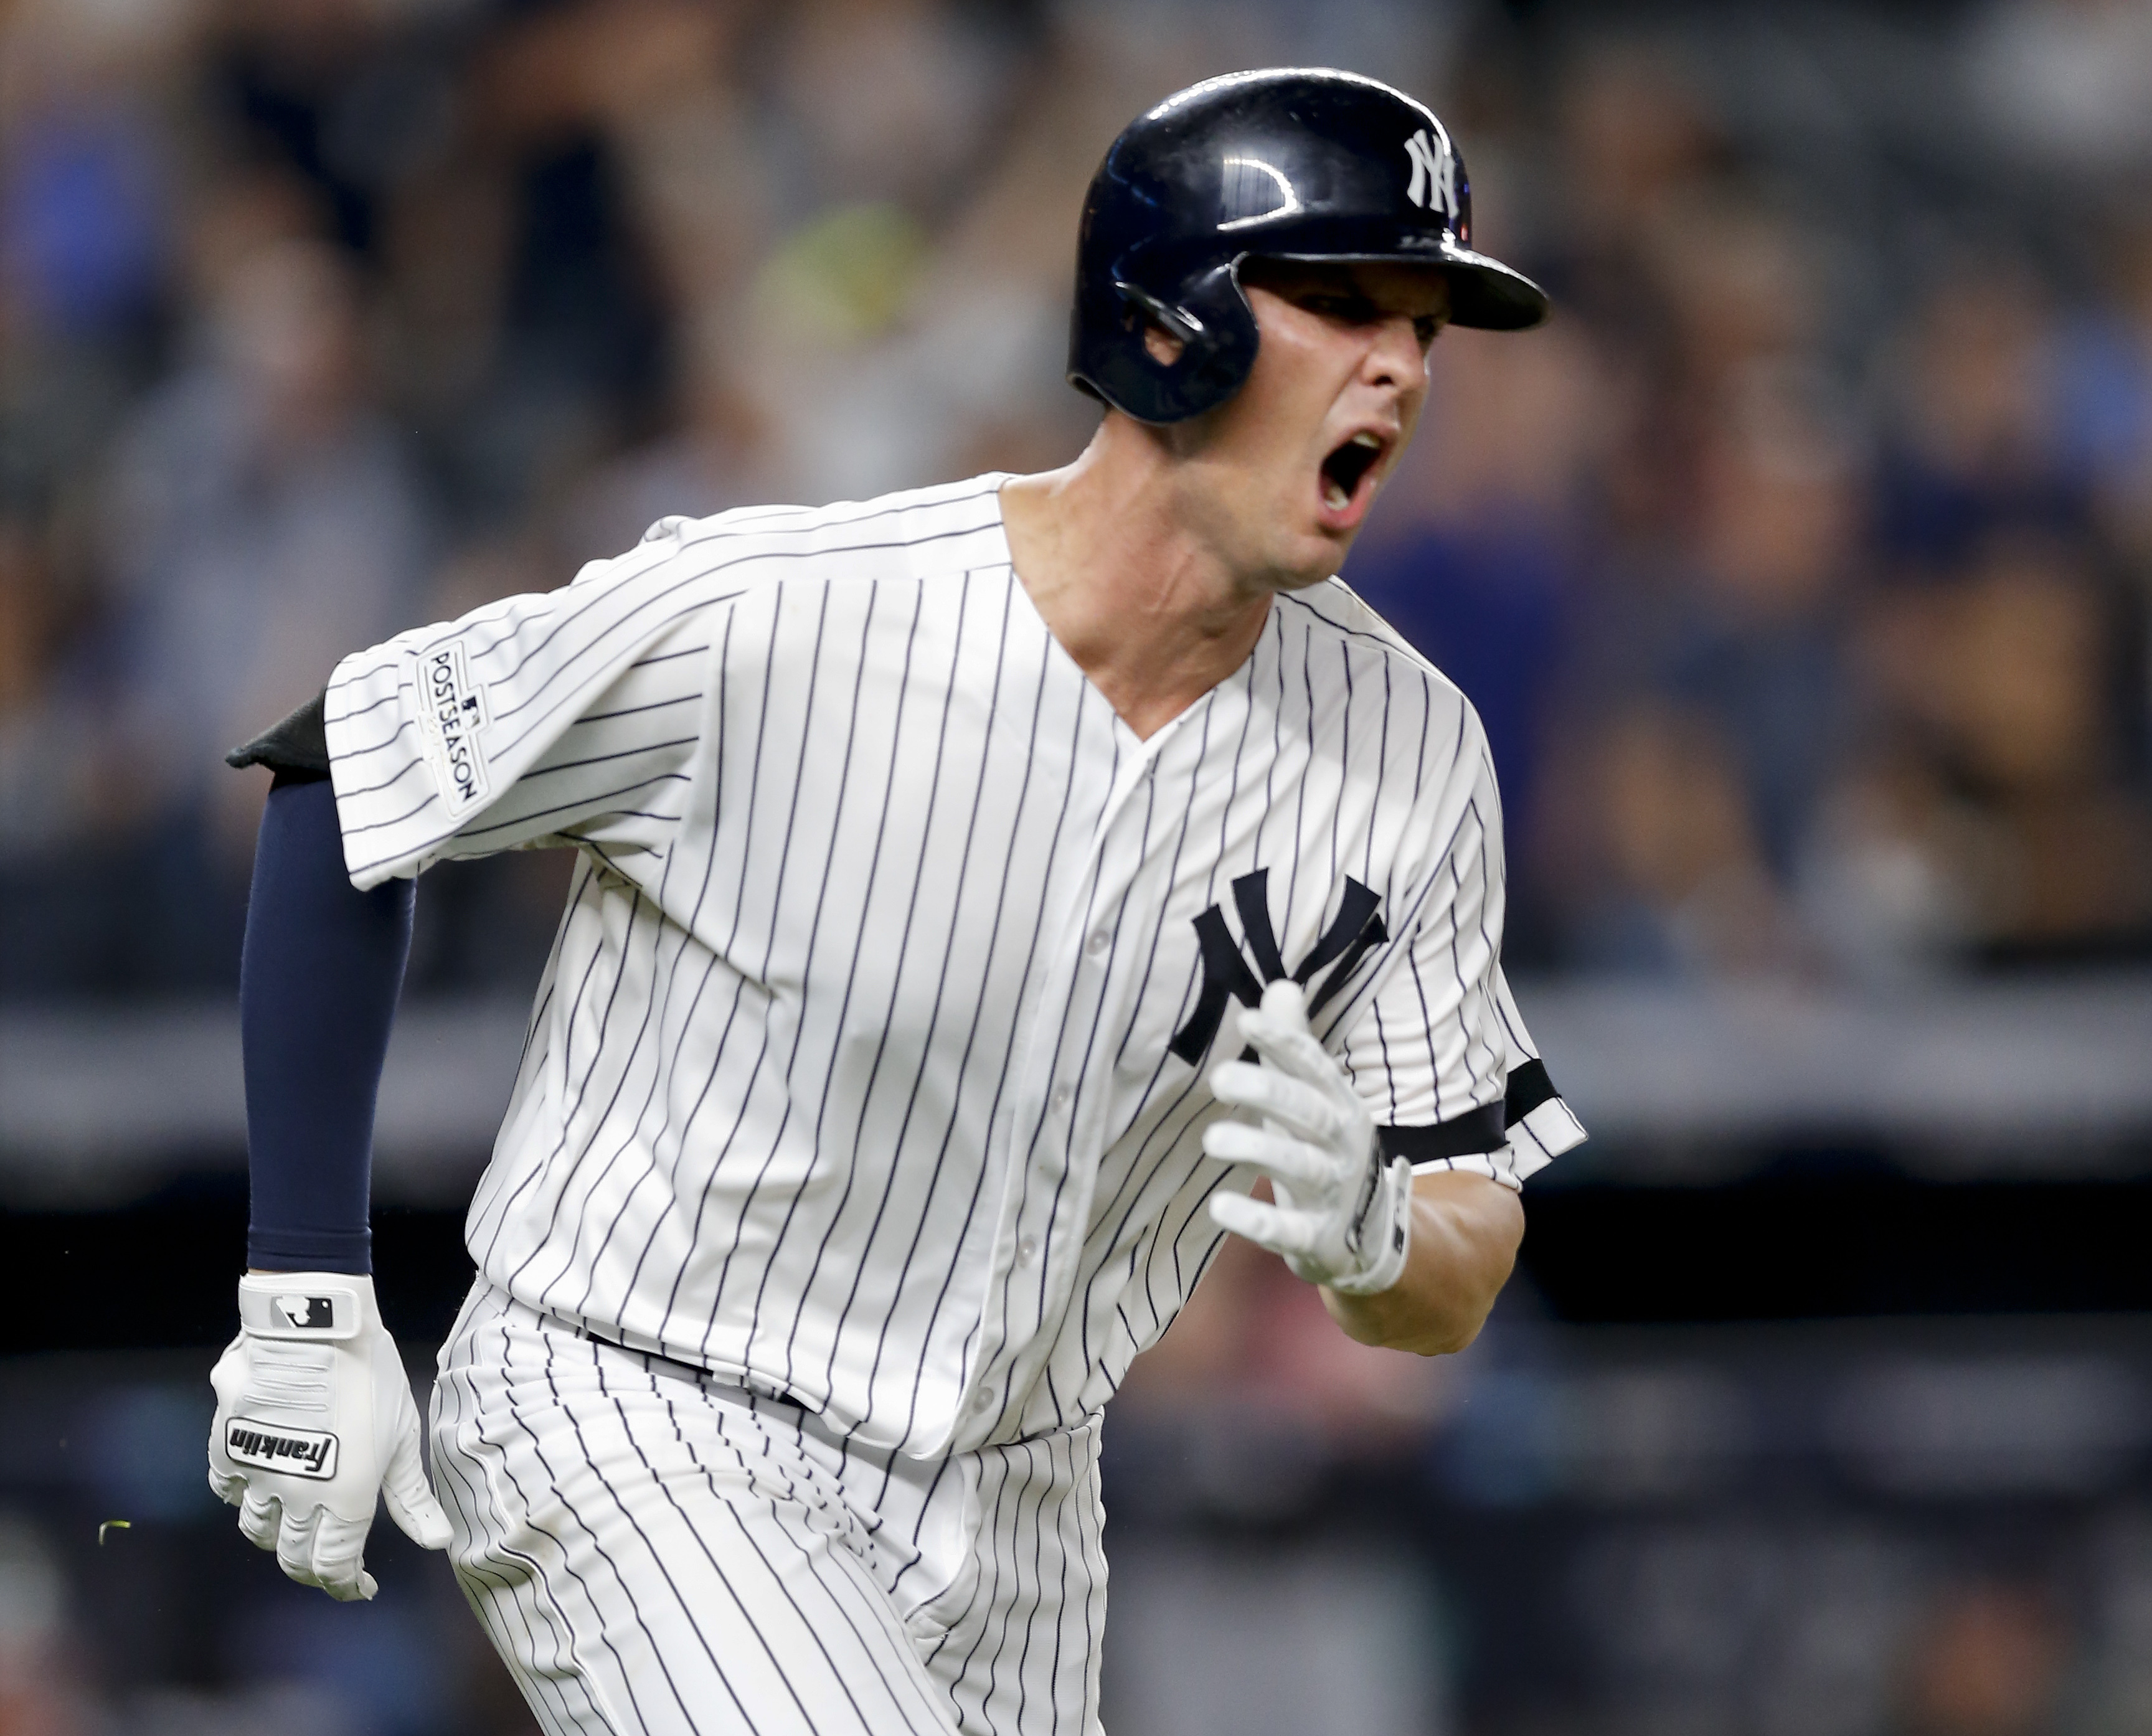 ALDS Game 3: Yankees stave off elimination with thrilling 1-0 victory